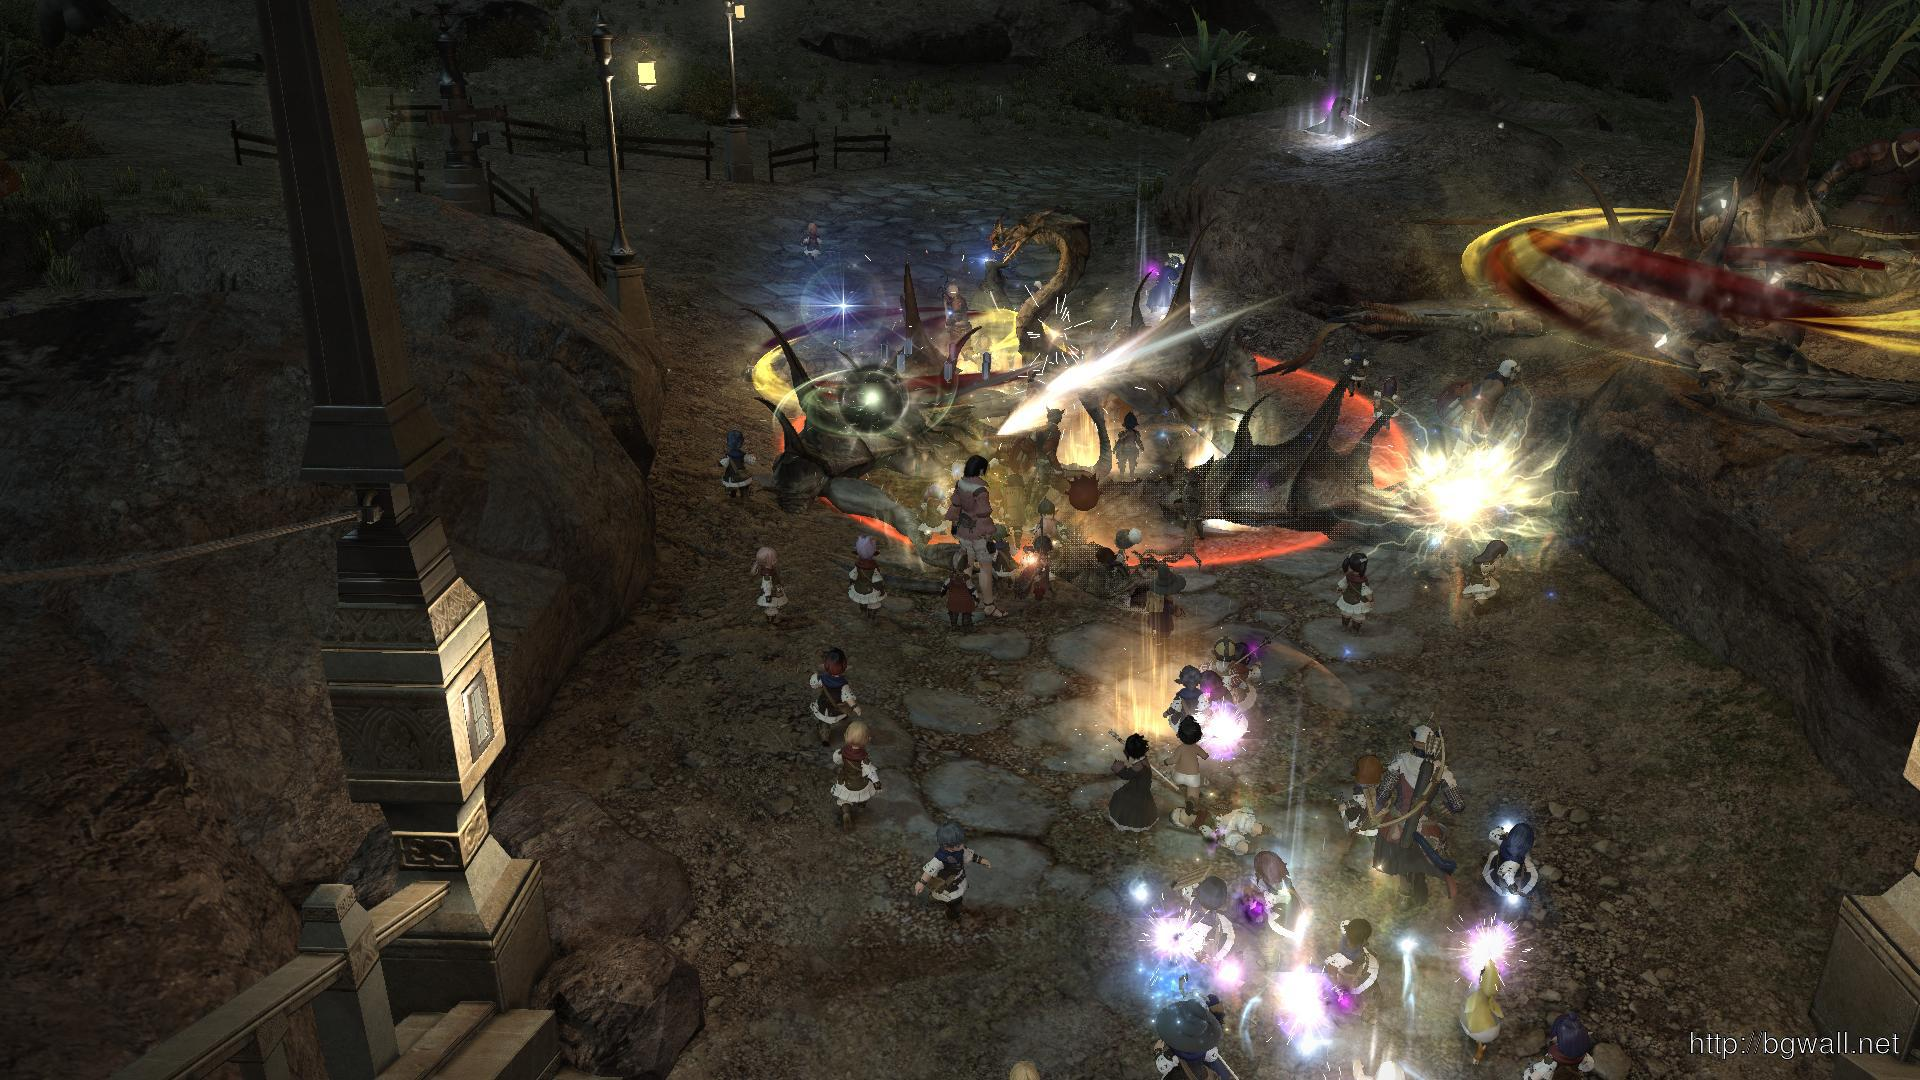 Download Final Fantasy Xiv Game Screen Widescreen High Resolution Full Size